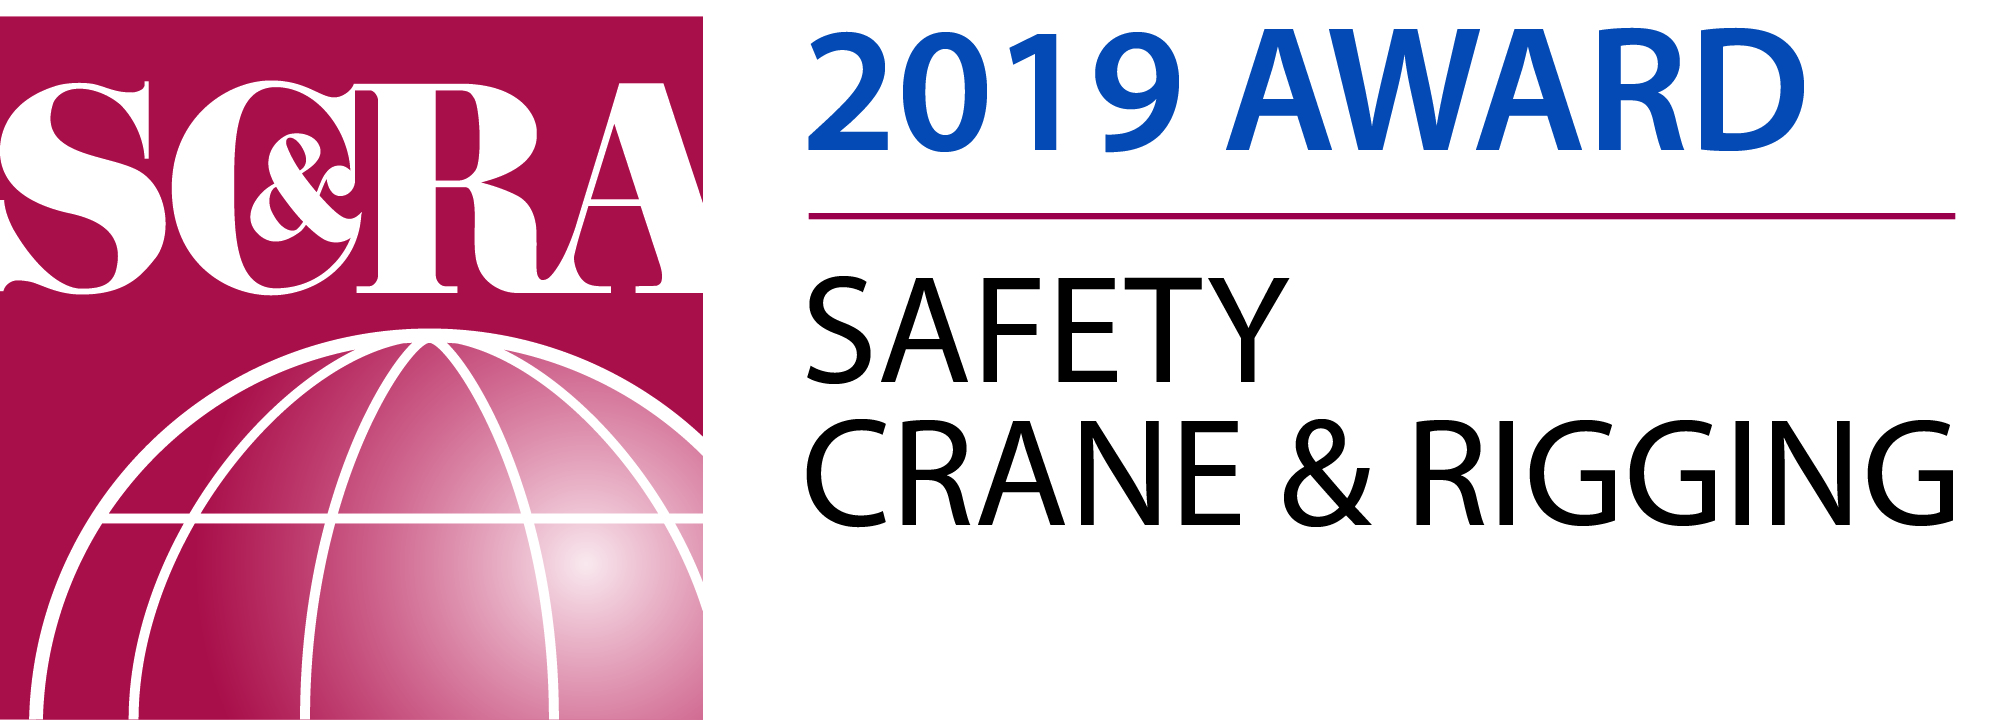 2019 Safety Crane & Rigging Award